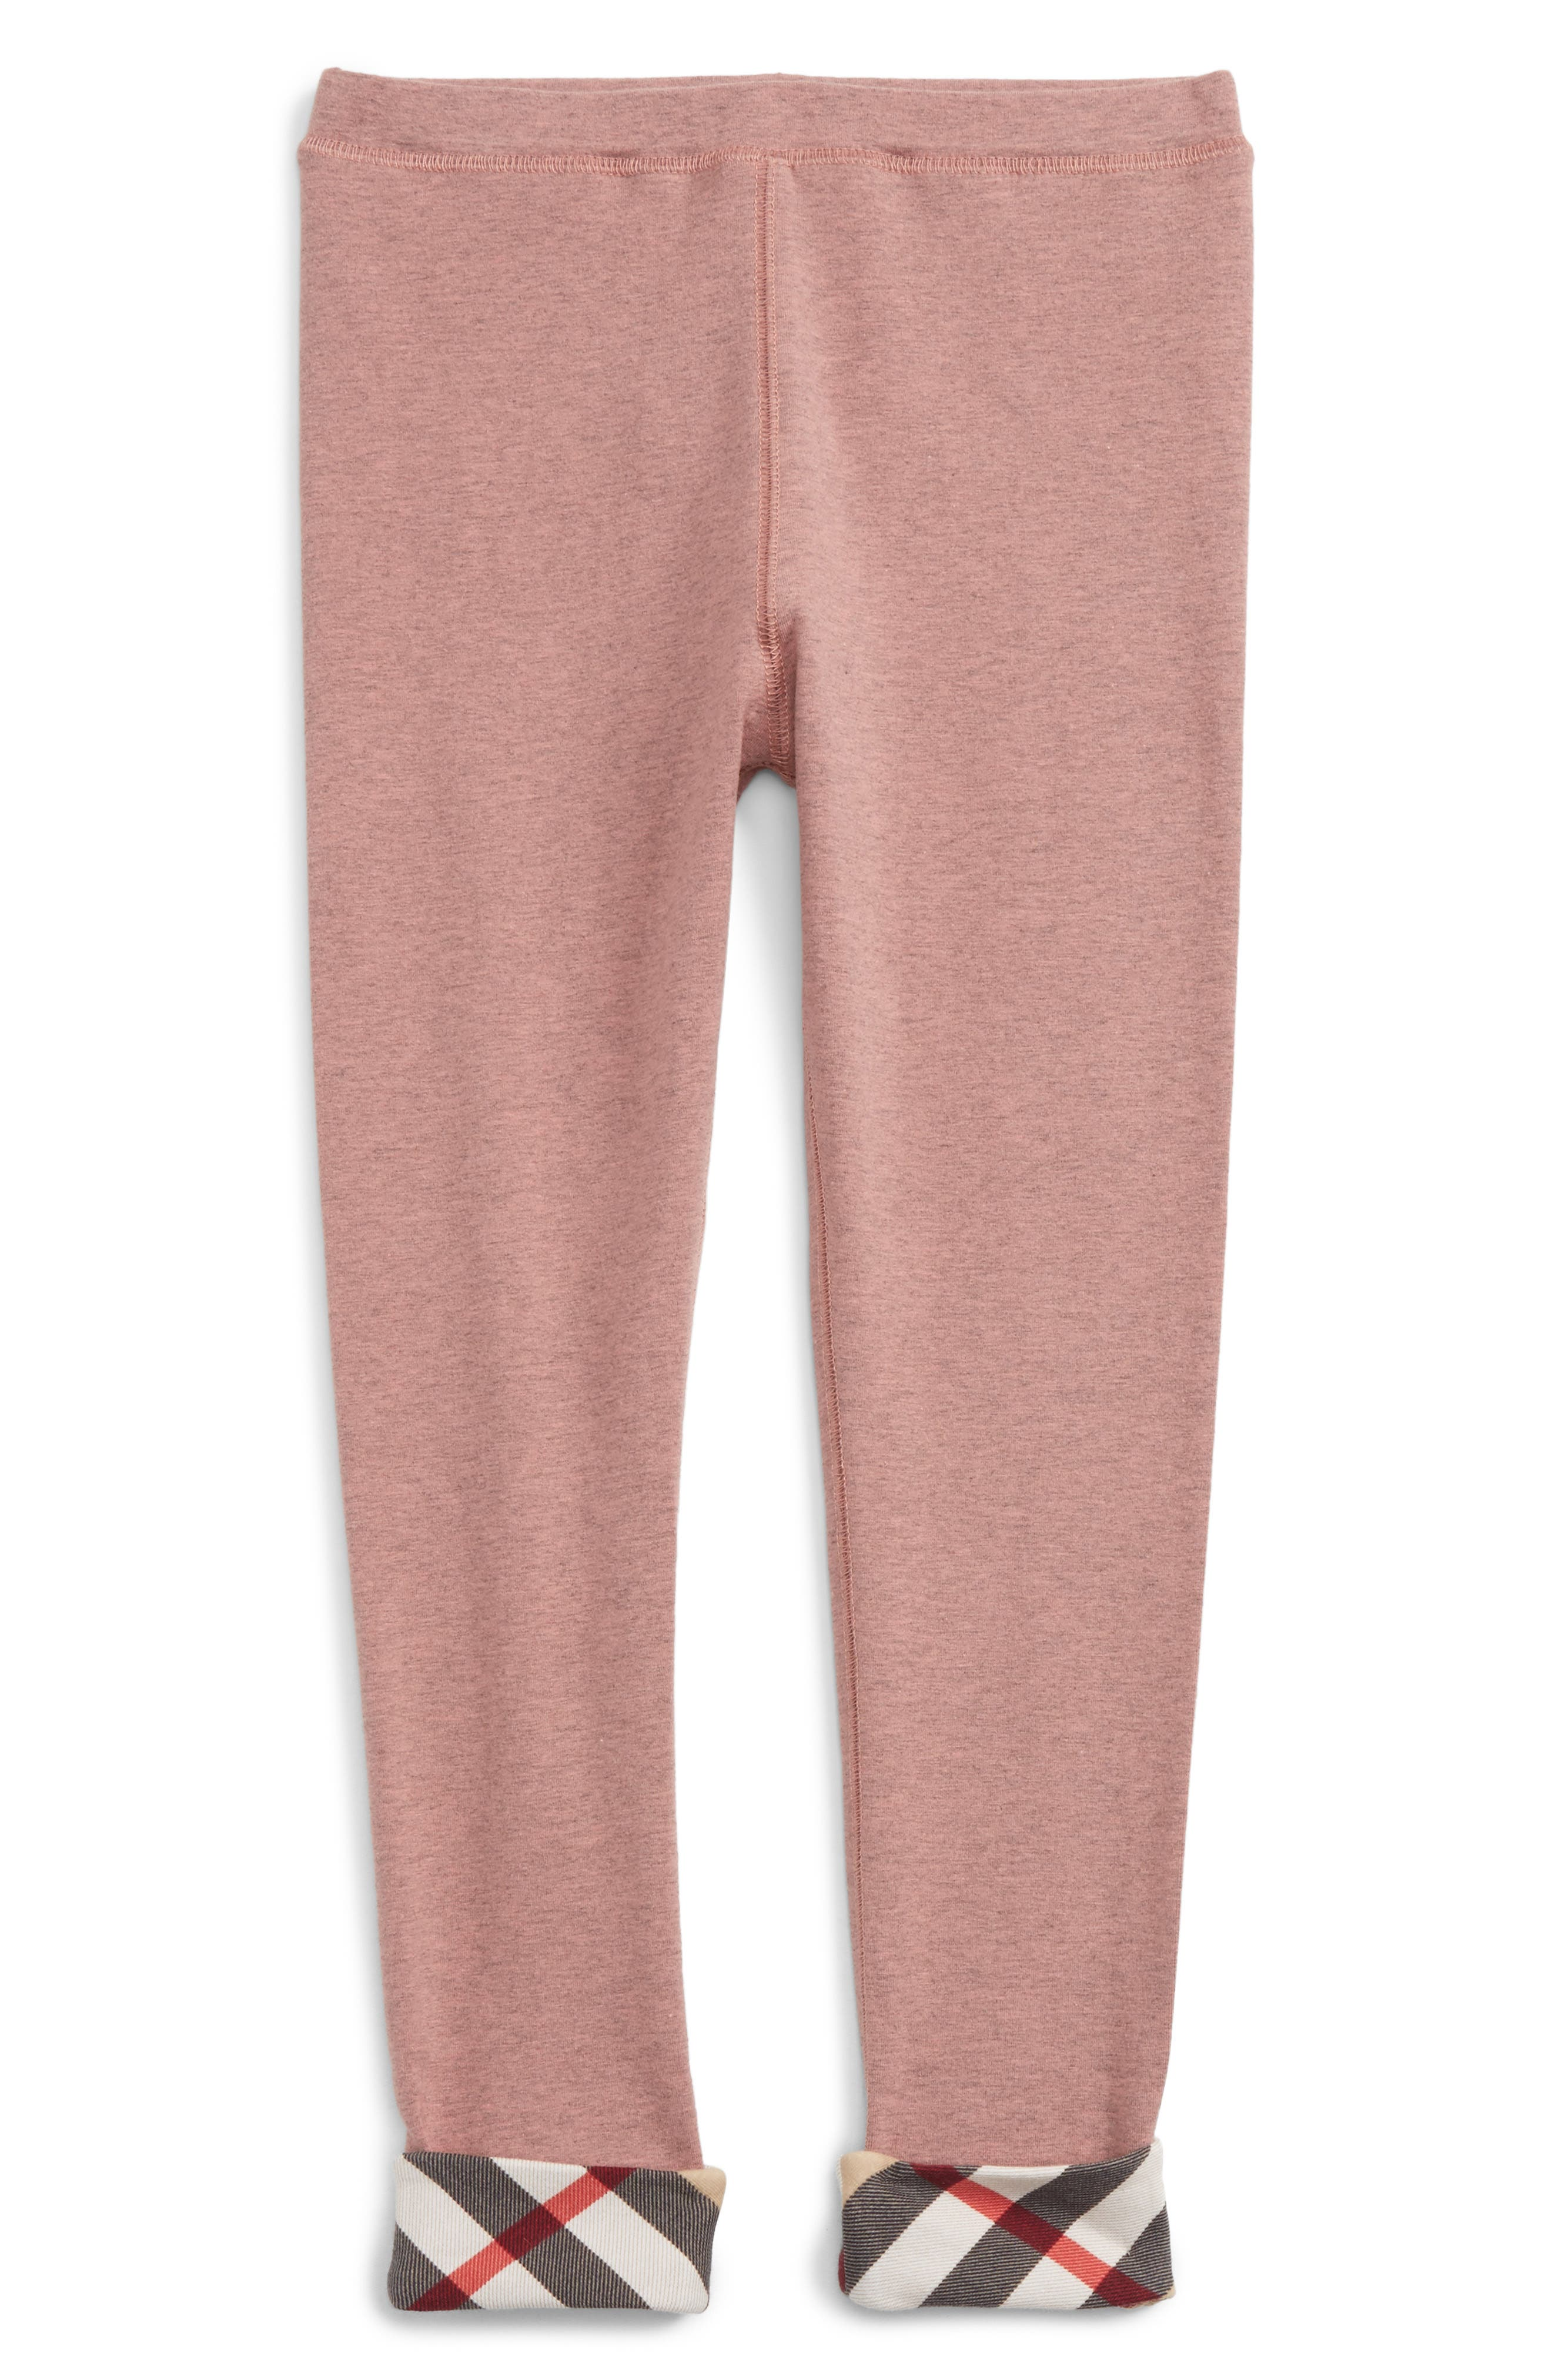 Penny Leggings,                             Main thumbnail 1, color,                             Pale Pink Melange